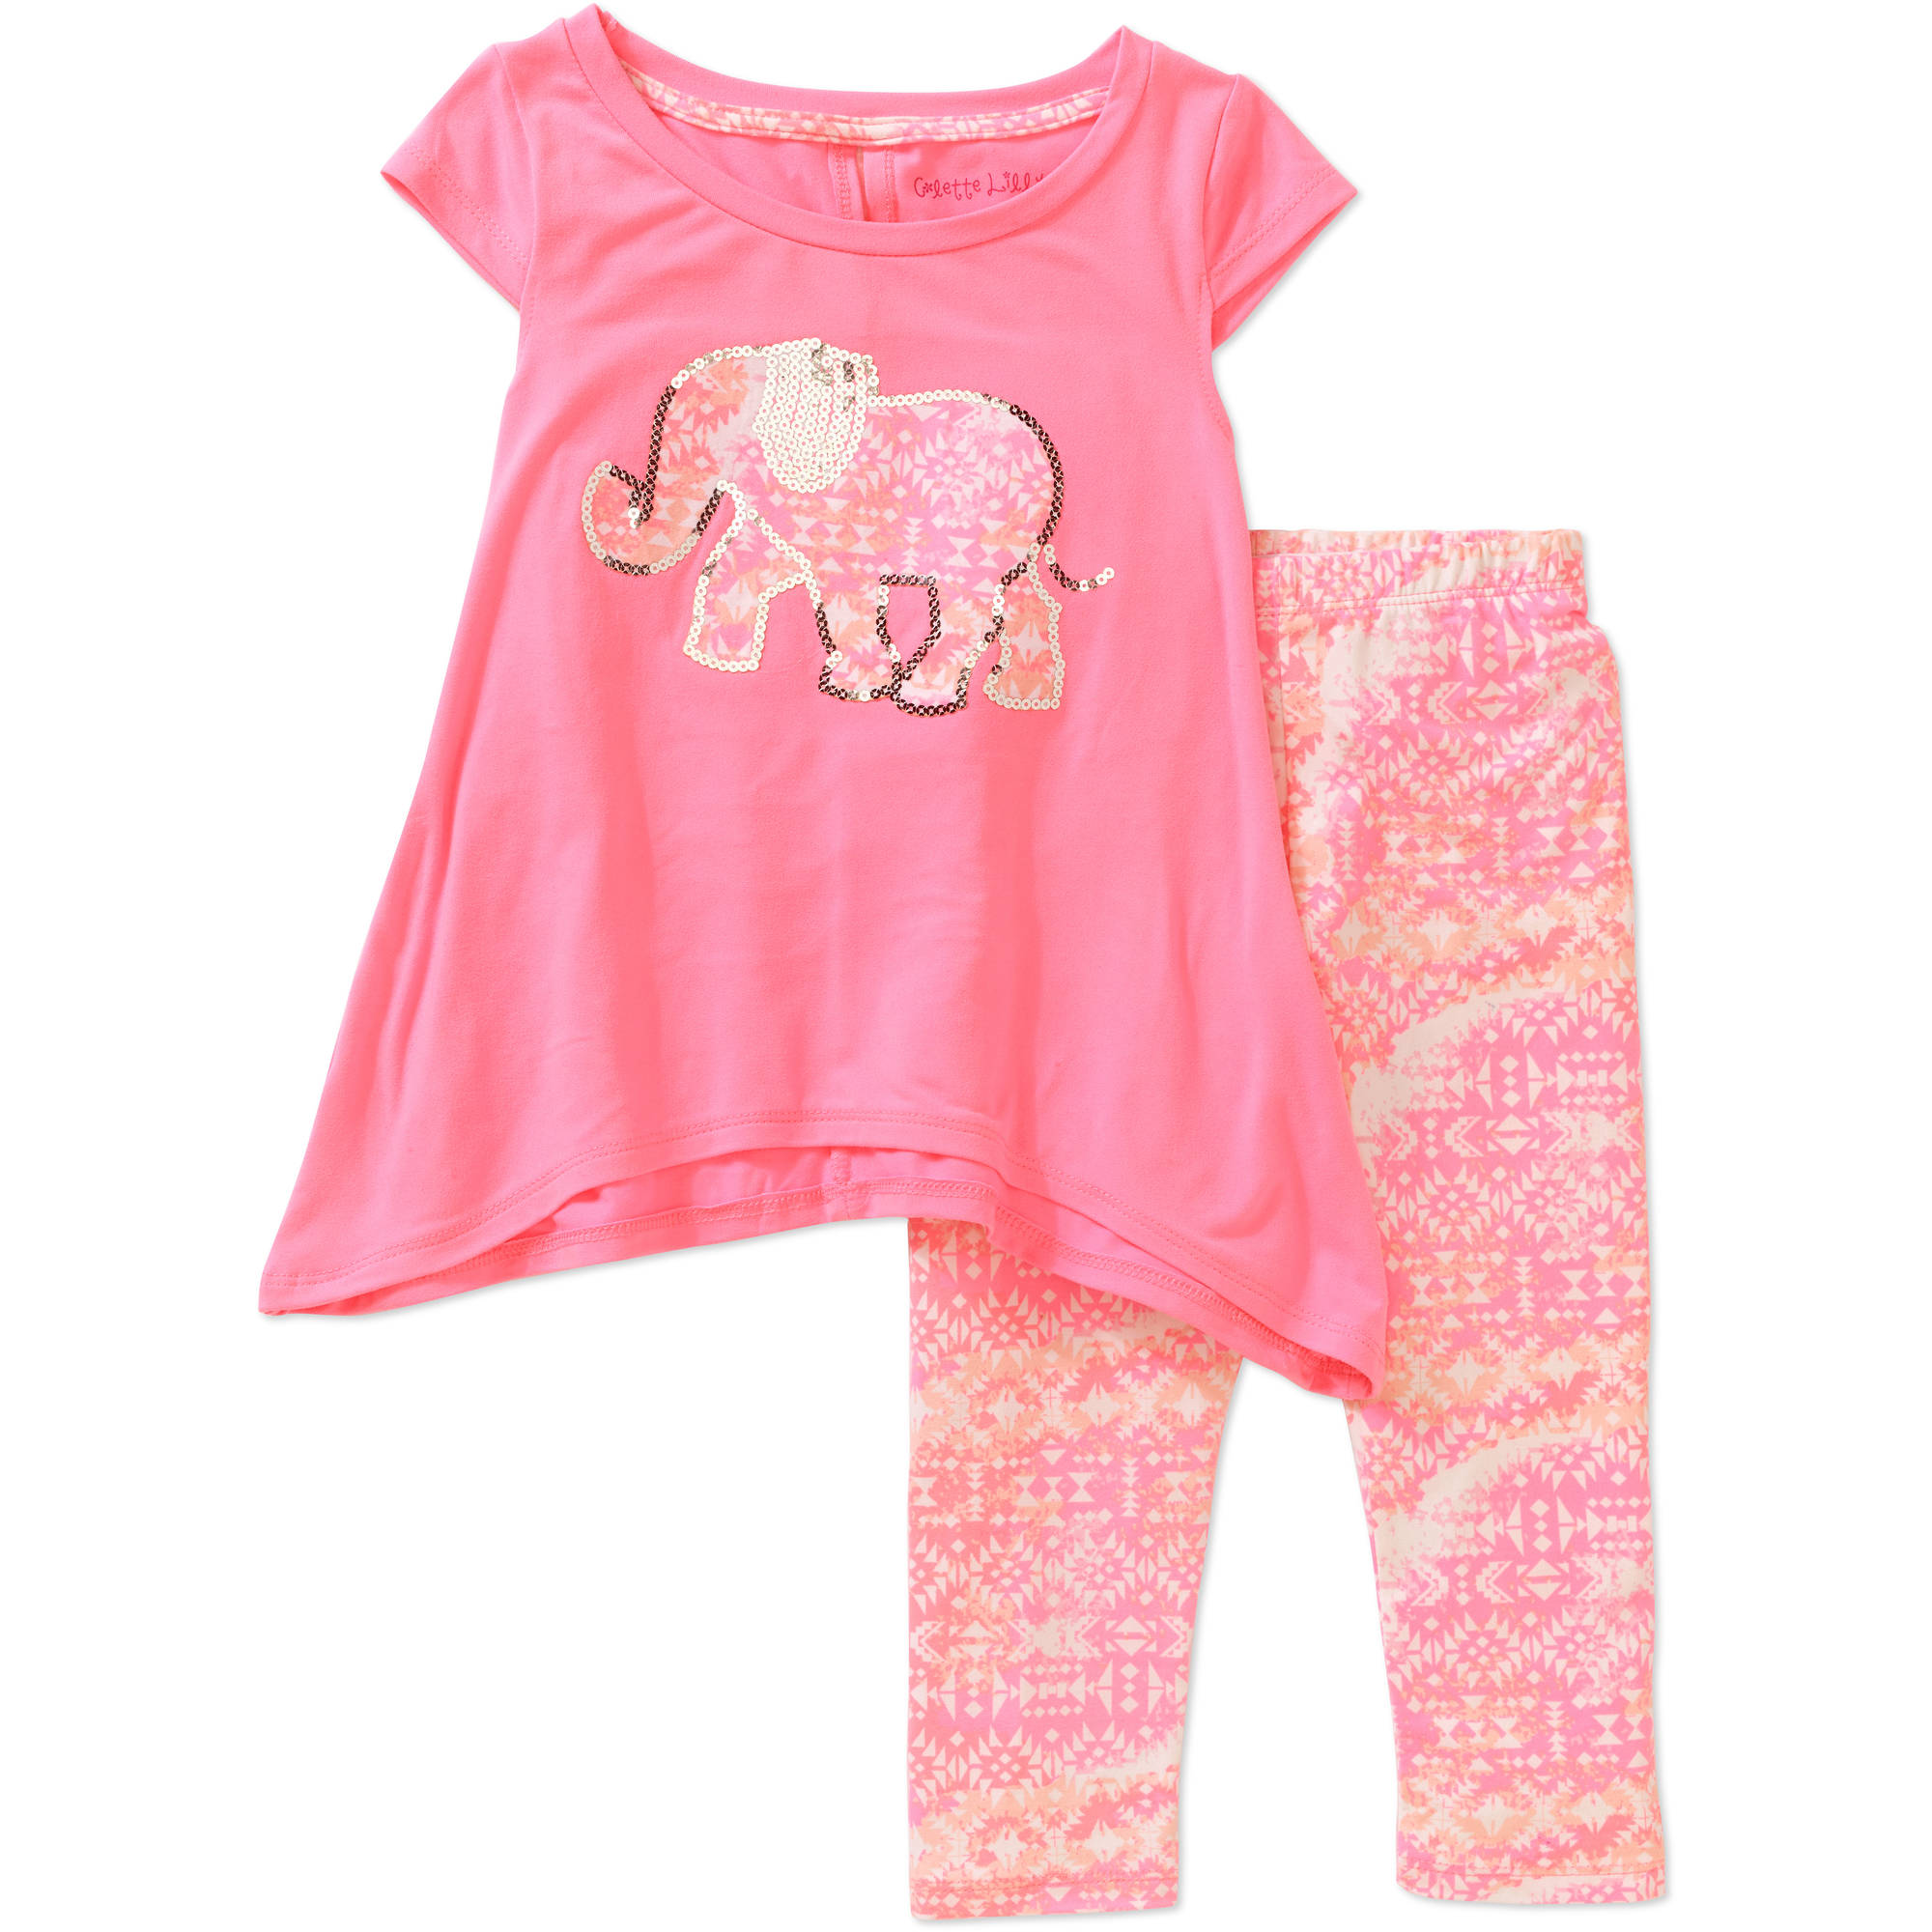 Colette Lilly Little Girls' Bab N Sequin Applique Top and Printed Leggings Set